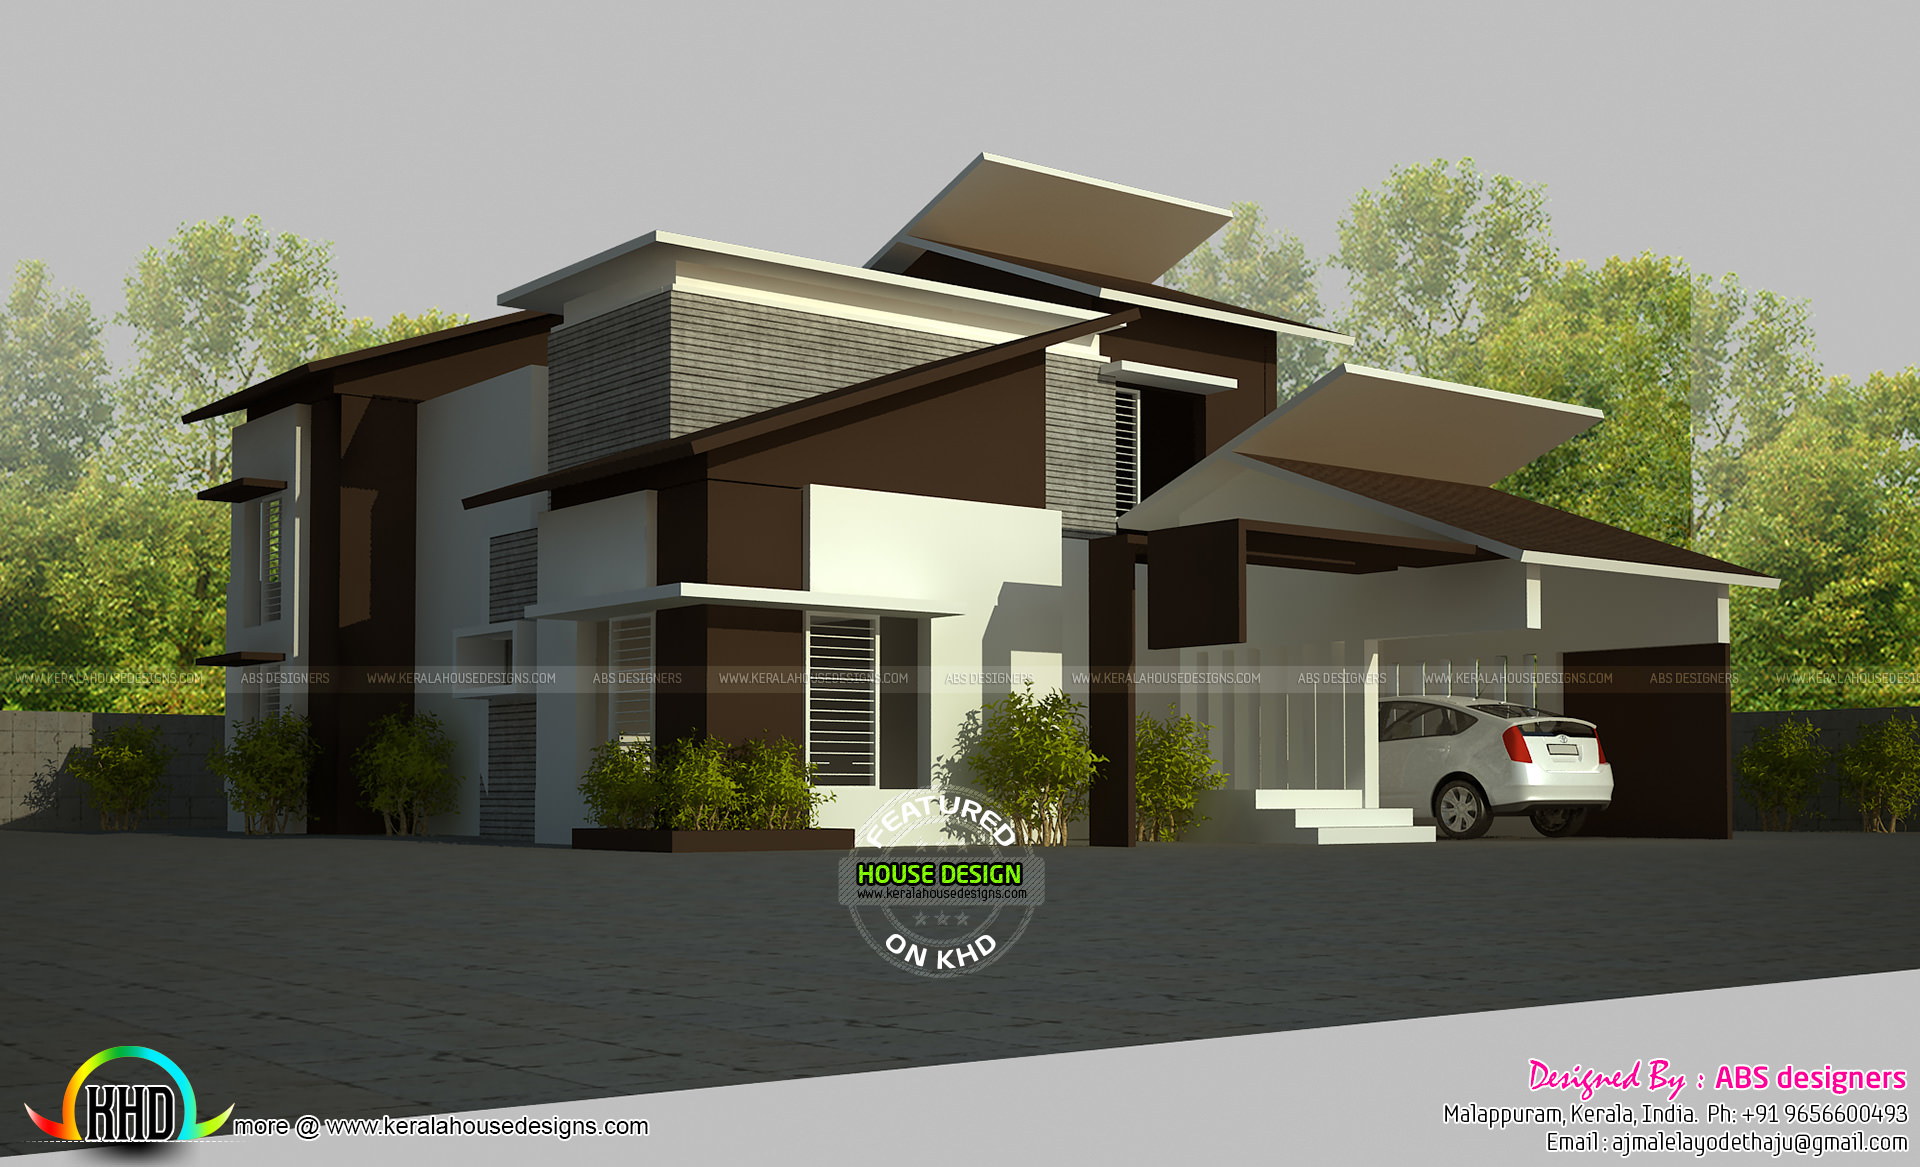 5 bedroom contemporary home 2800 sq-ft